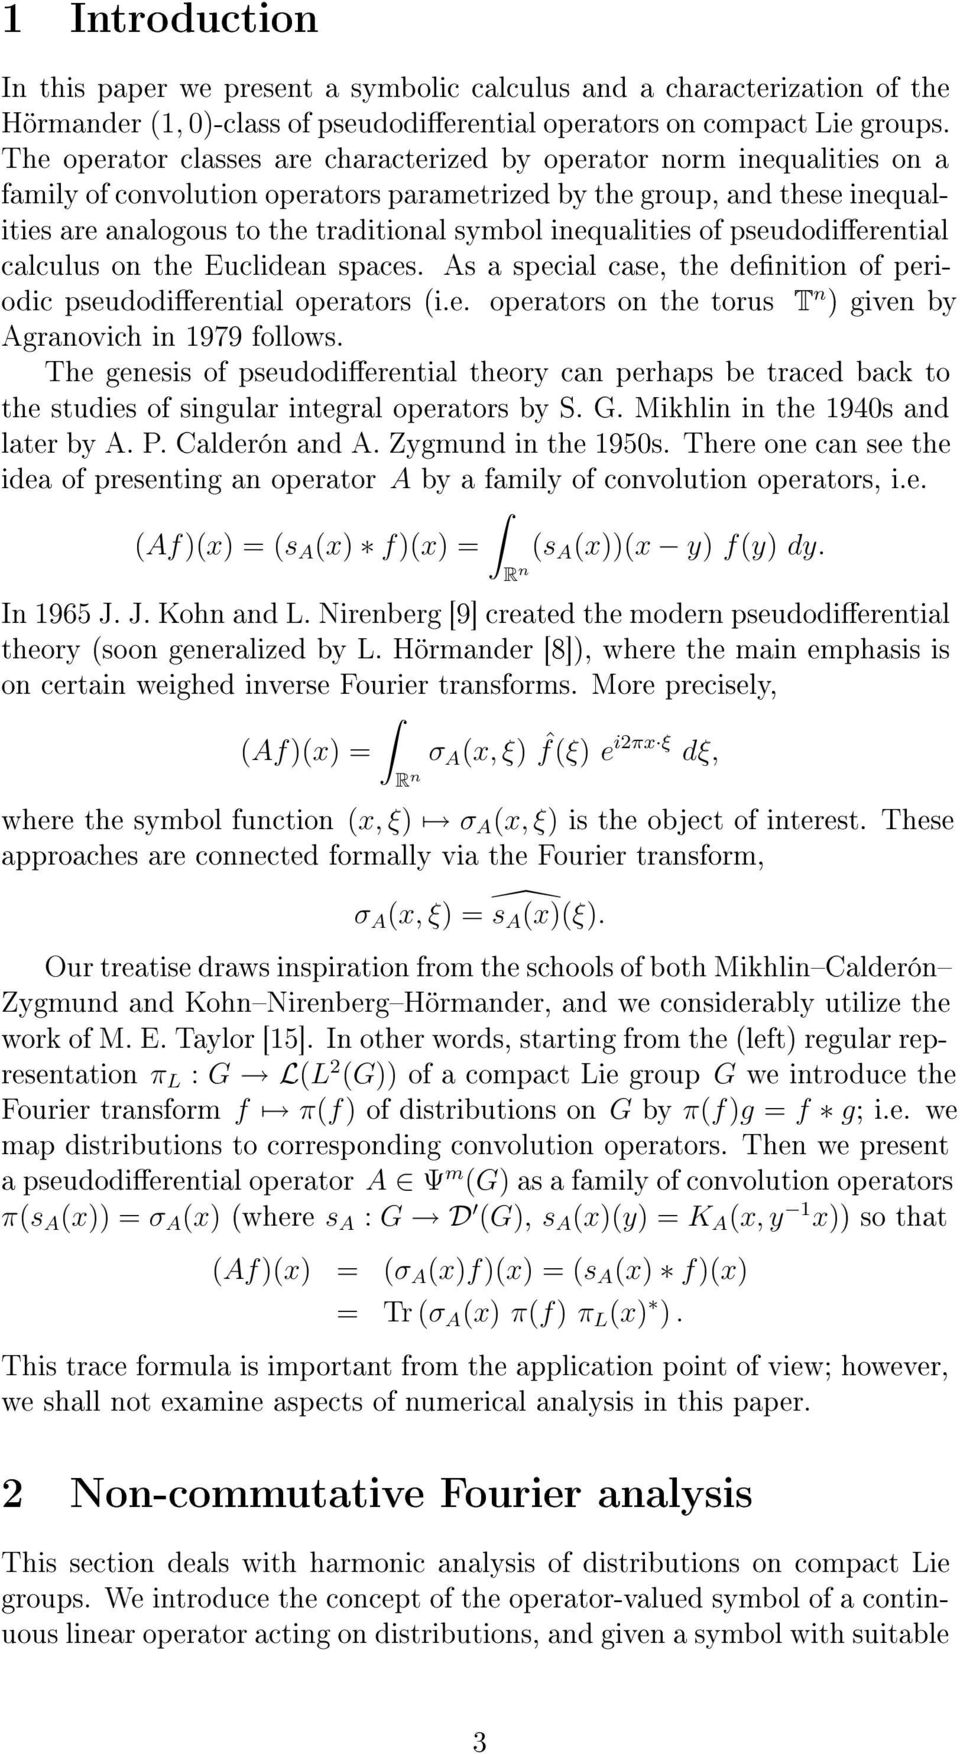 inequalities of pseudodierential calculus on the Euclidean spaces. As a special case, the denition of periodic pseudodierential operators (i.e. operators on the torus T n ) given by Agranovich in 1979 follows.